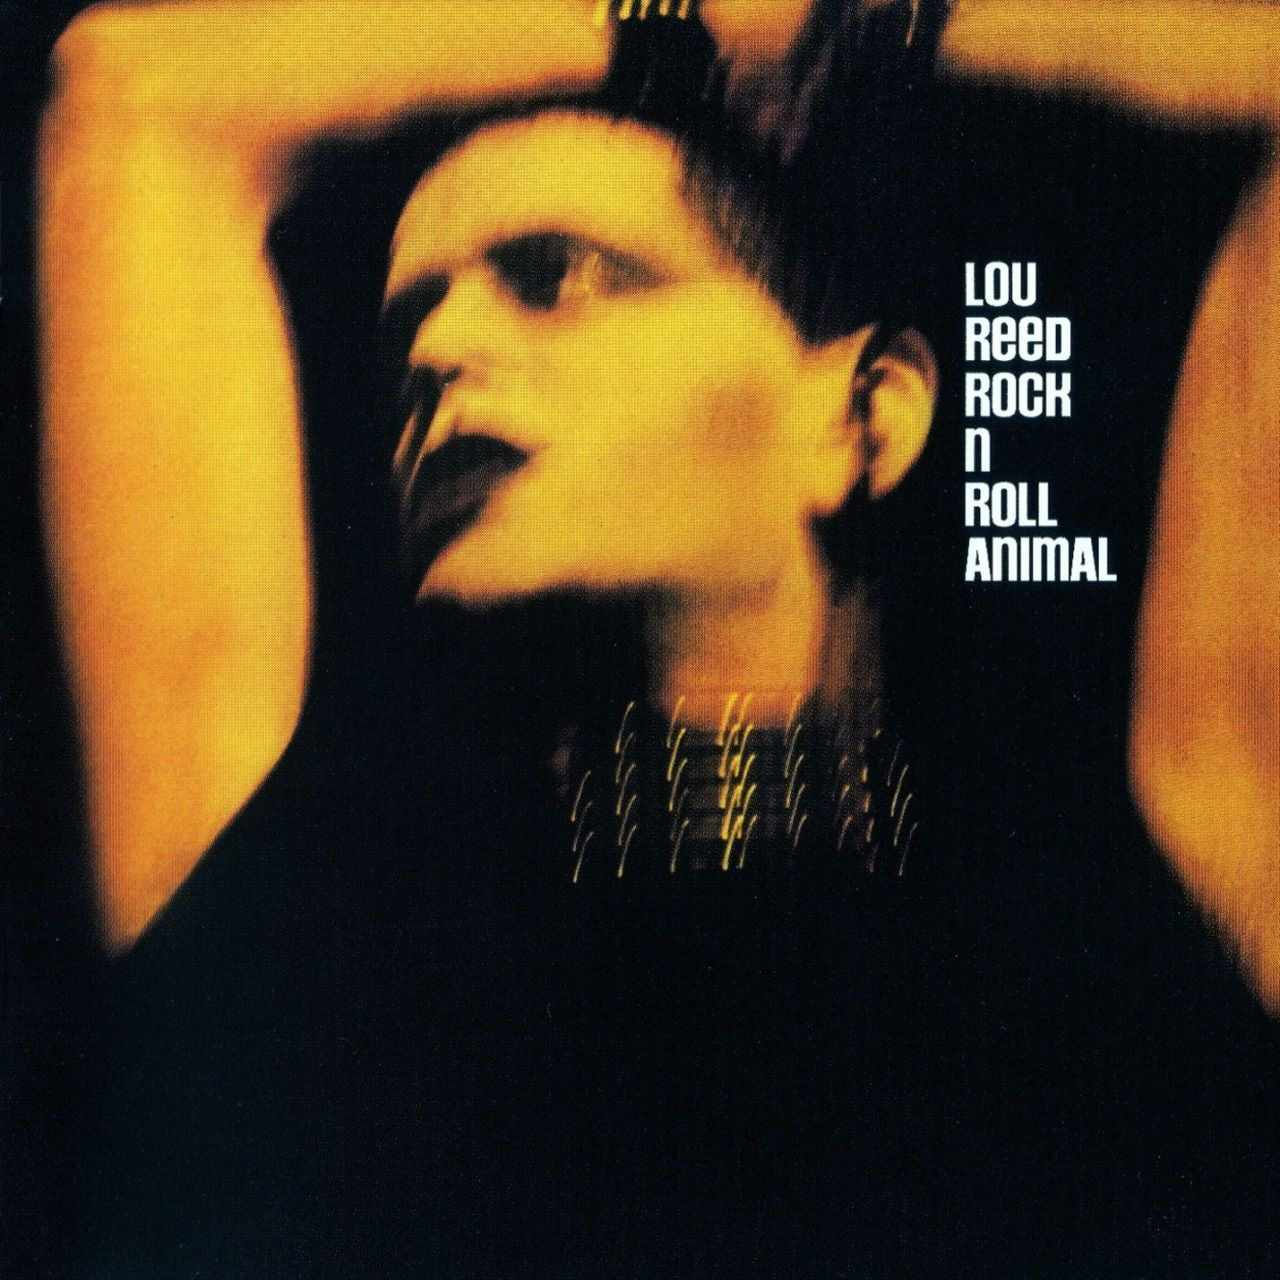 13++ Lou reed rock and roll animal ideas in 2021